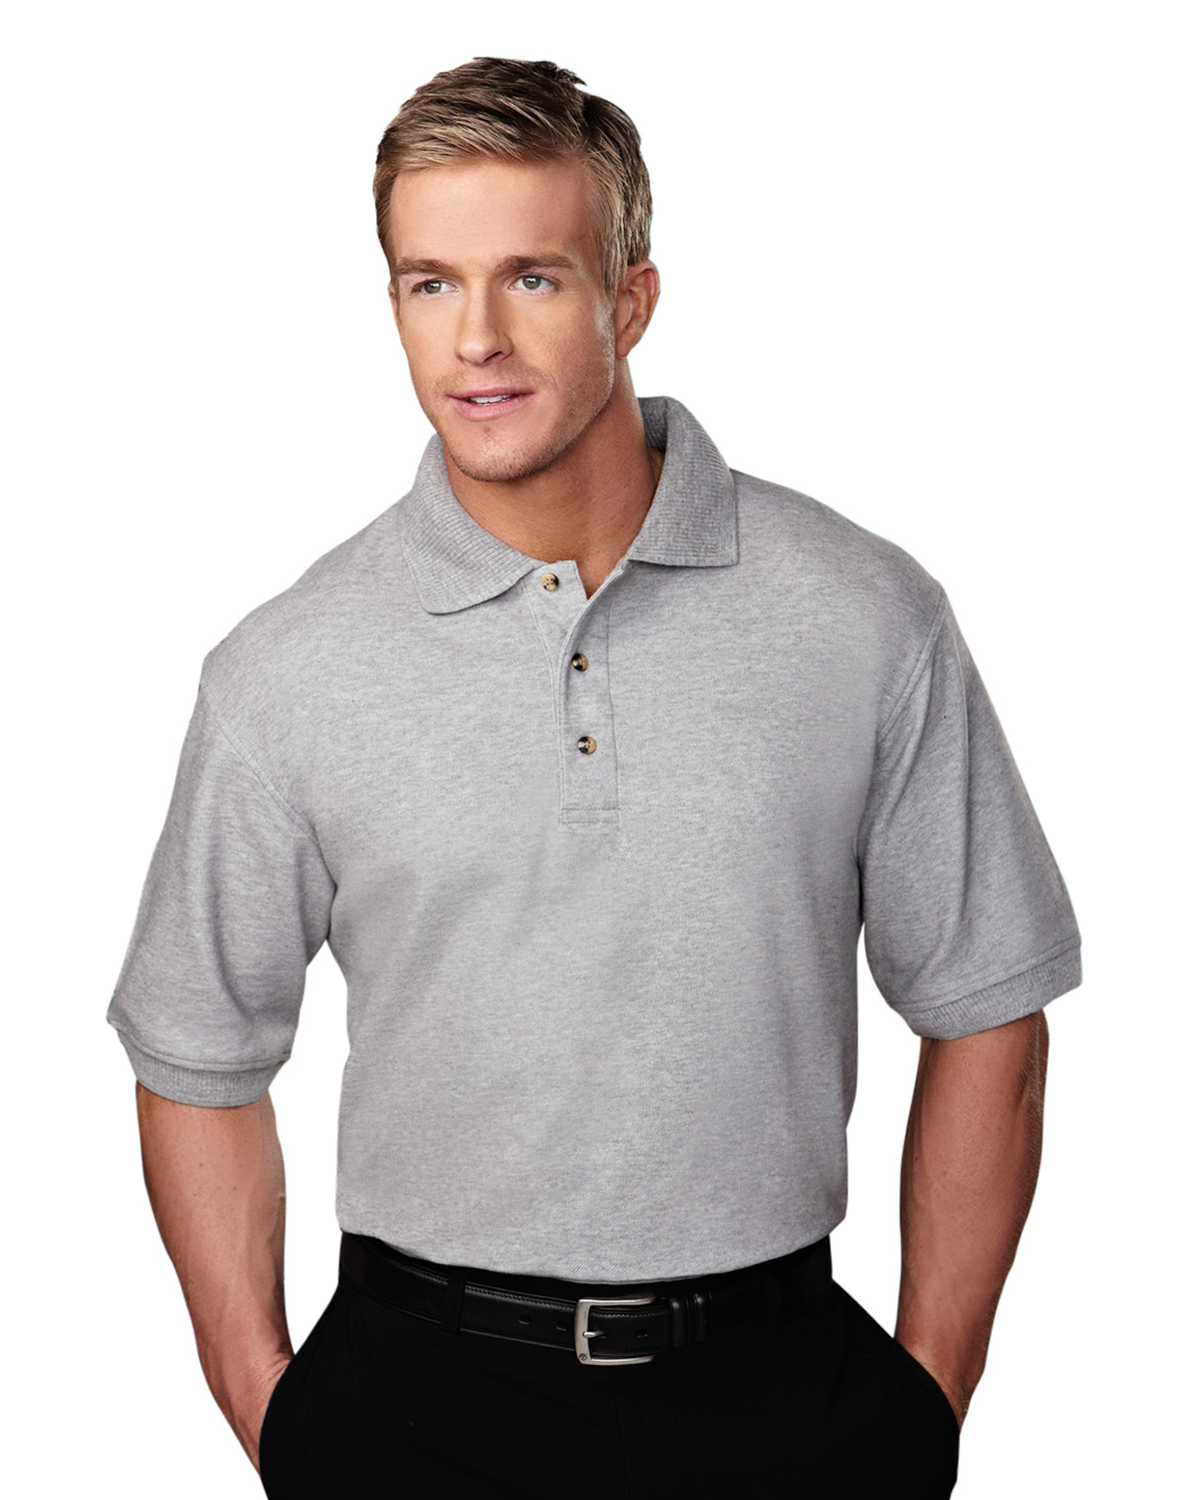 tri mountain ultracool pique polo golf shirt at big and